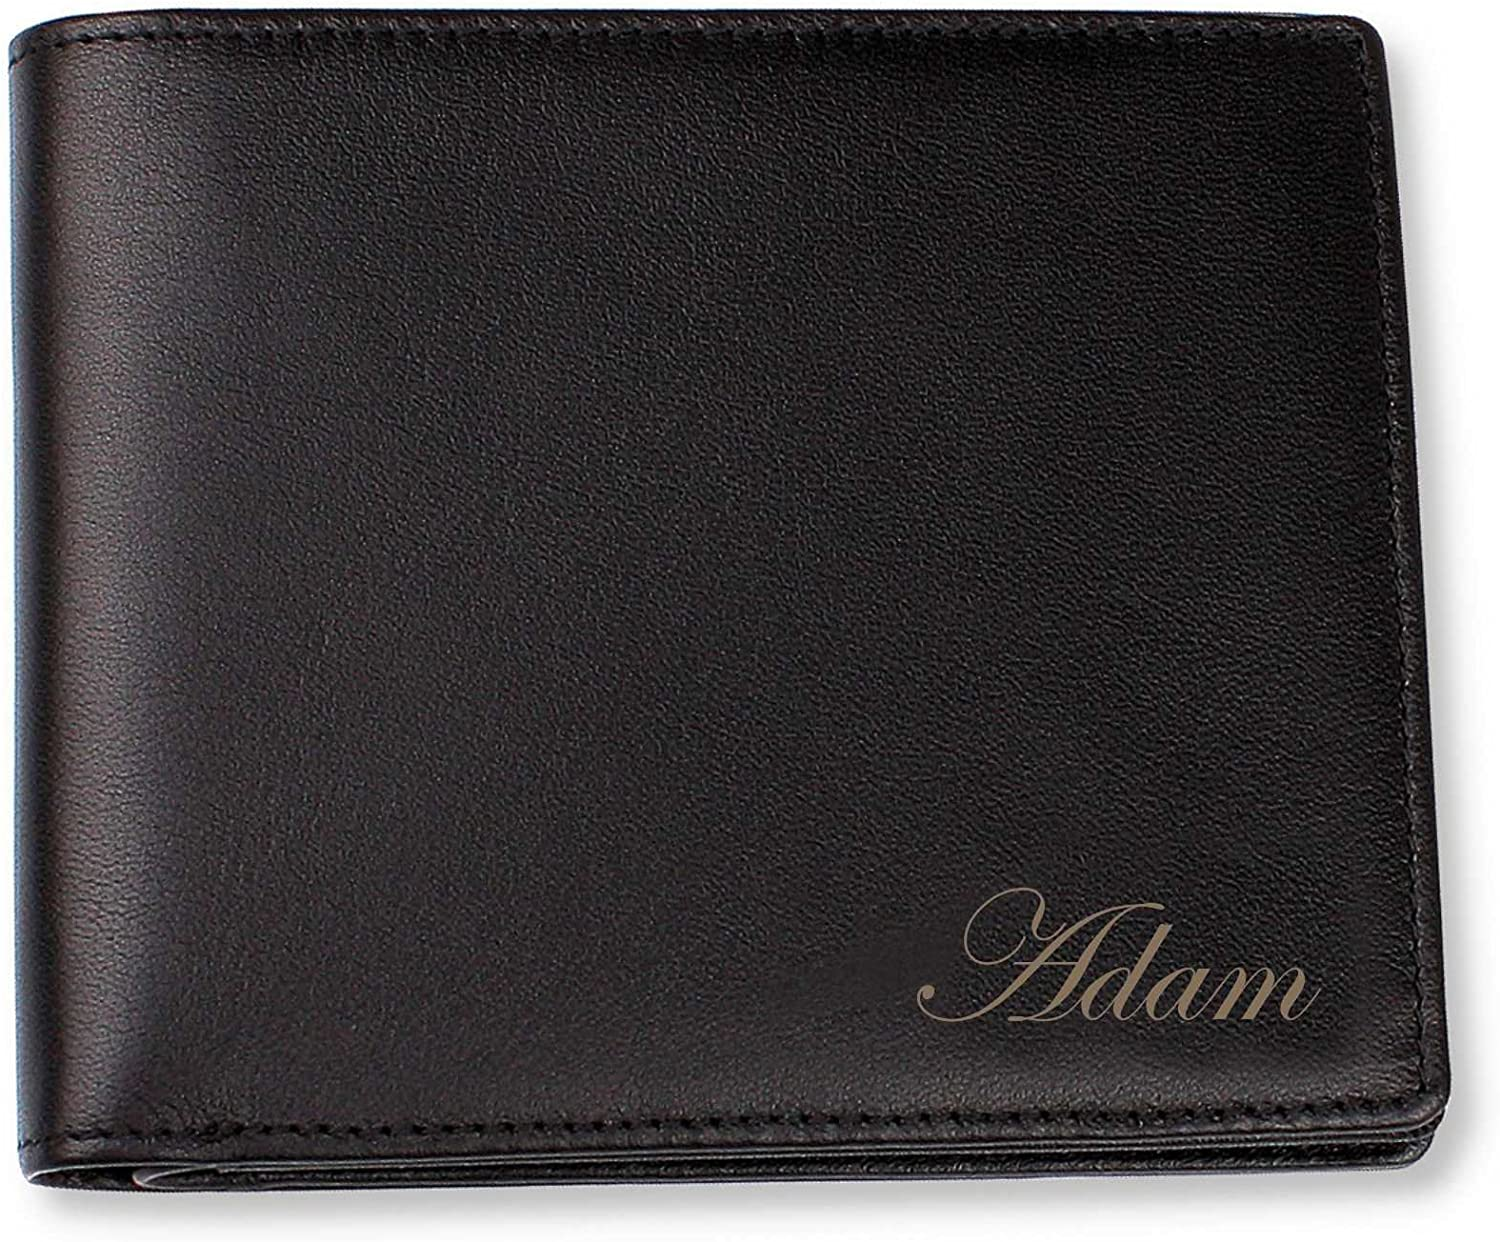 Personalized Black Leather Bi-fold Wallet Engraved Free - Ships from USA